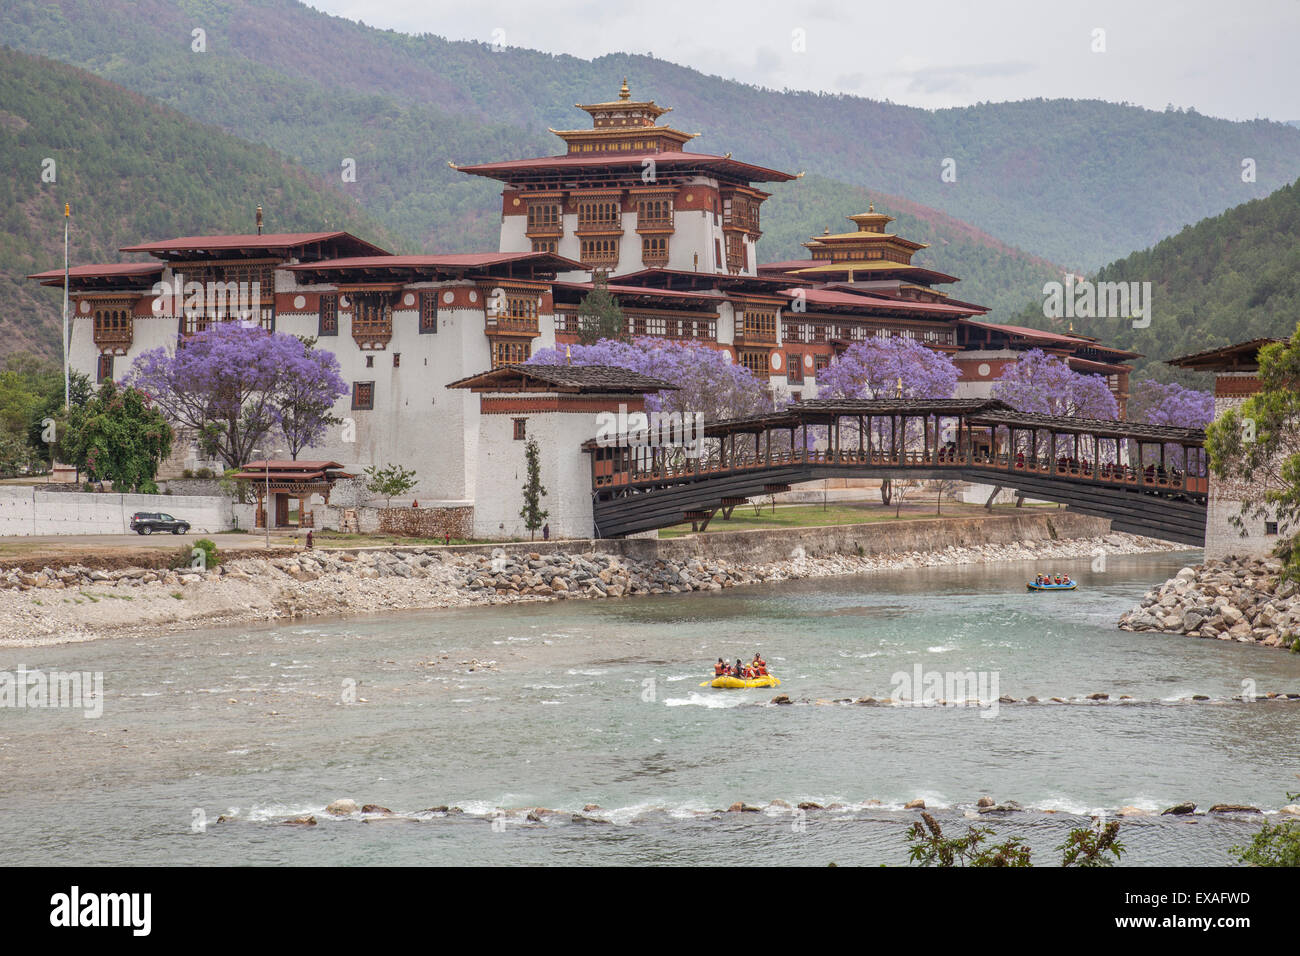 Rafting in the River Mo Chhu flowing near the Punakha Dzong where bloom the Jacaranda trees, Bhutan, Asia - Stock Image